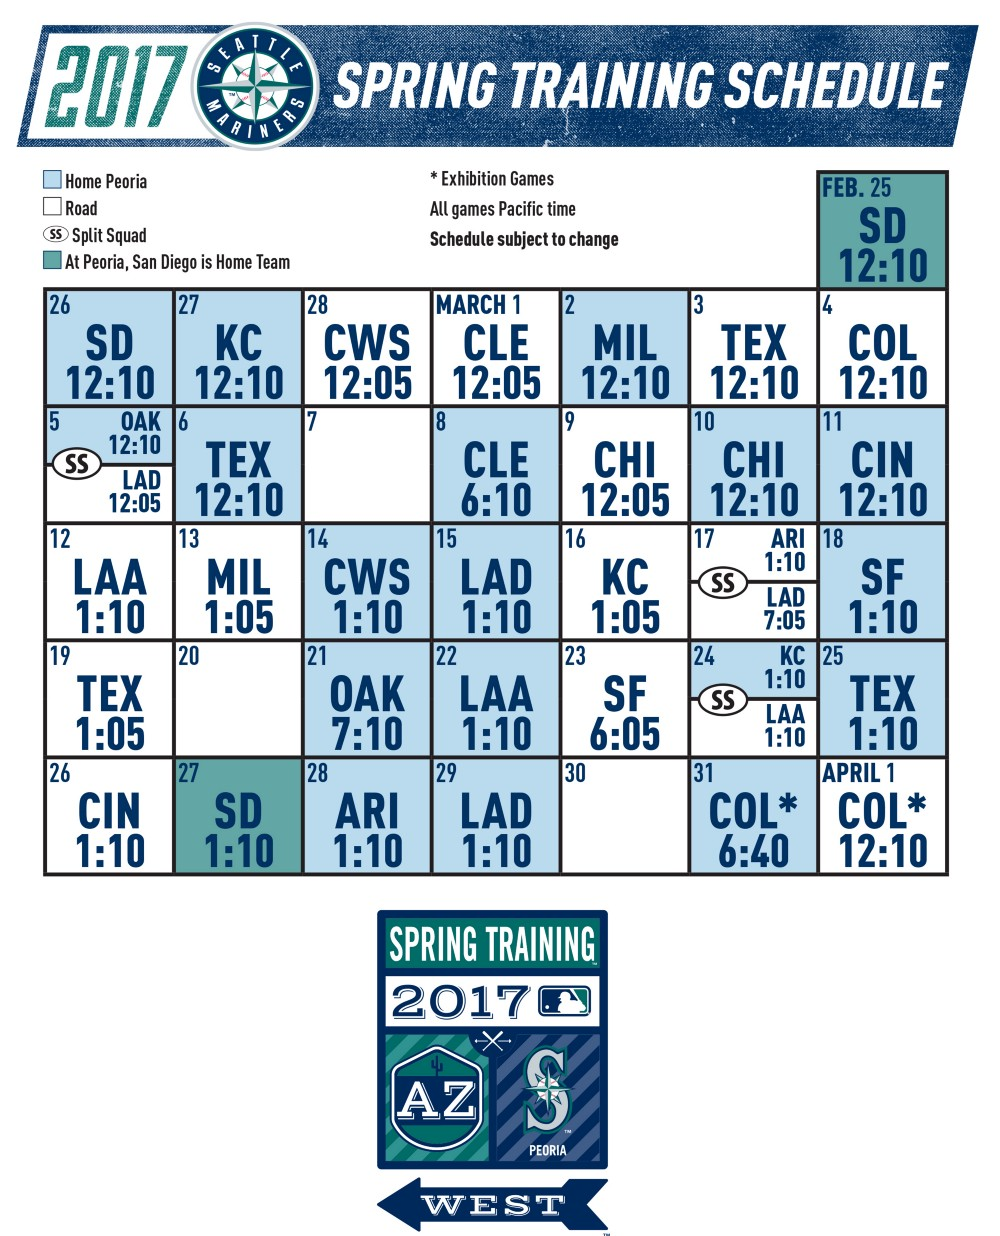 Mariners Announce 2017 Spring Training Schedule From The